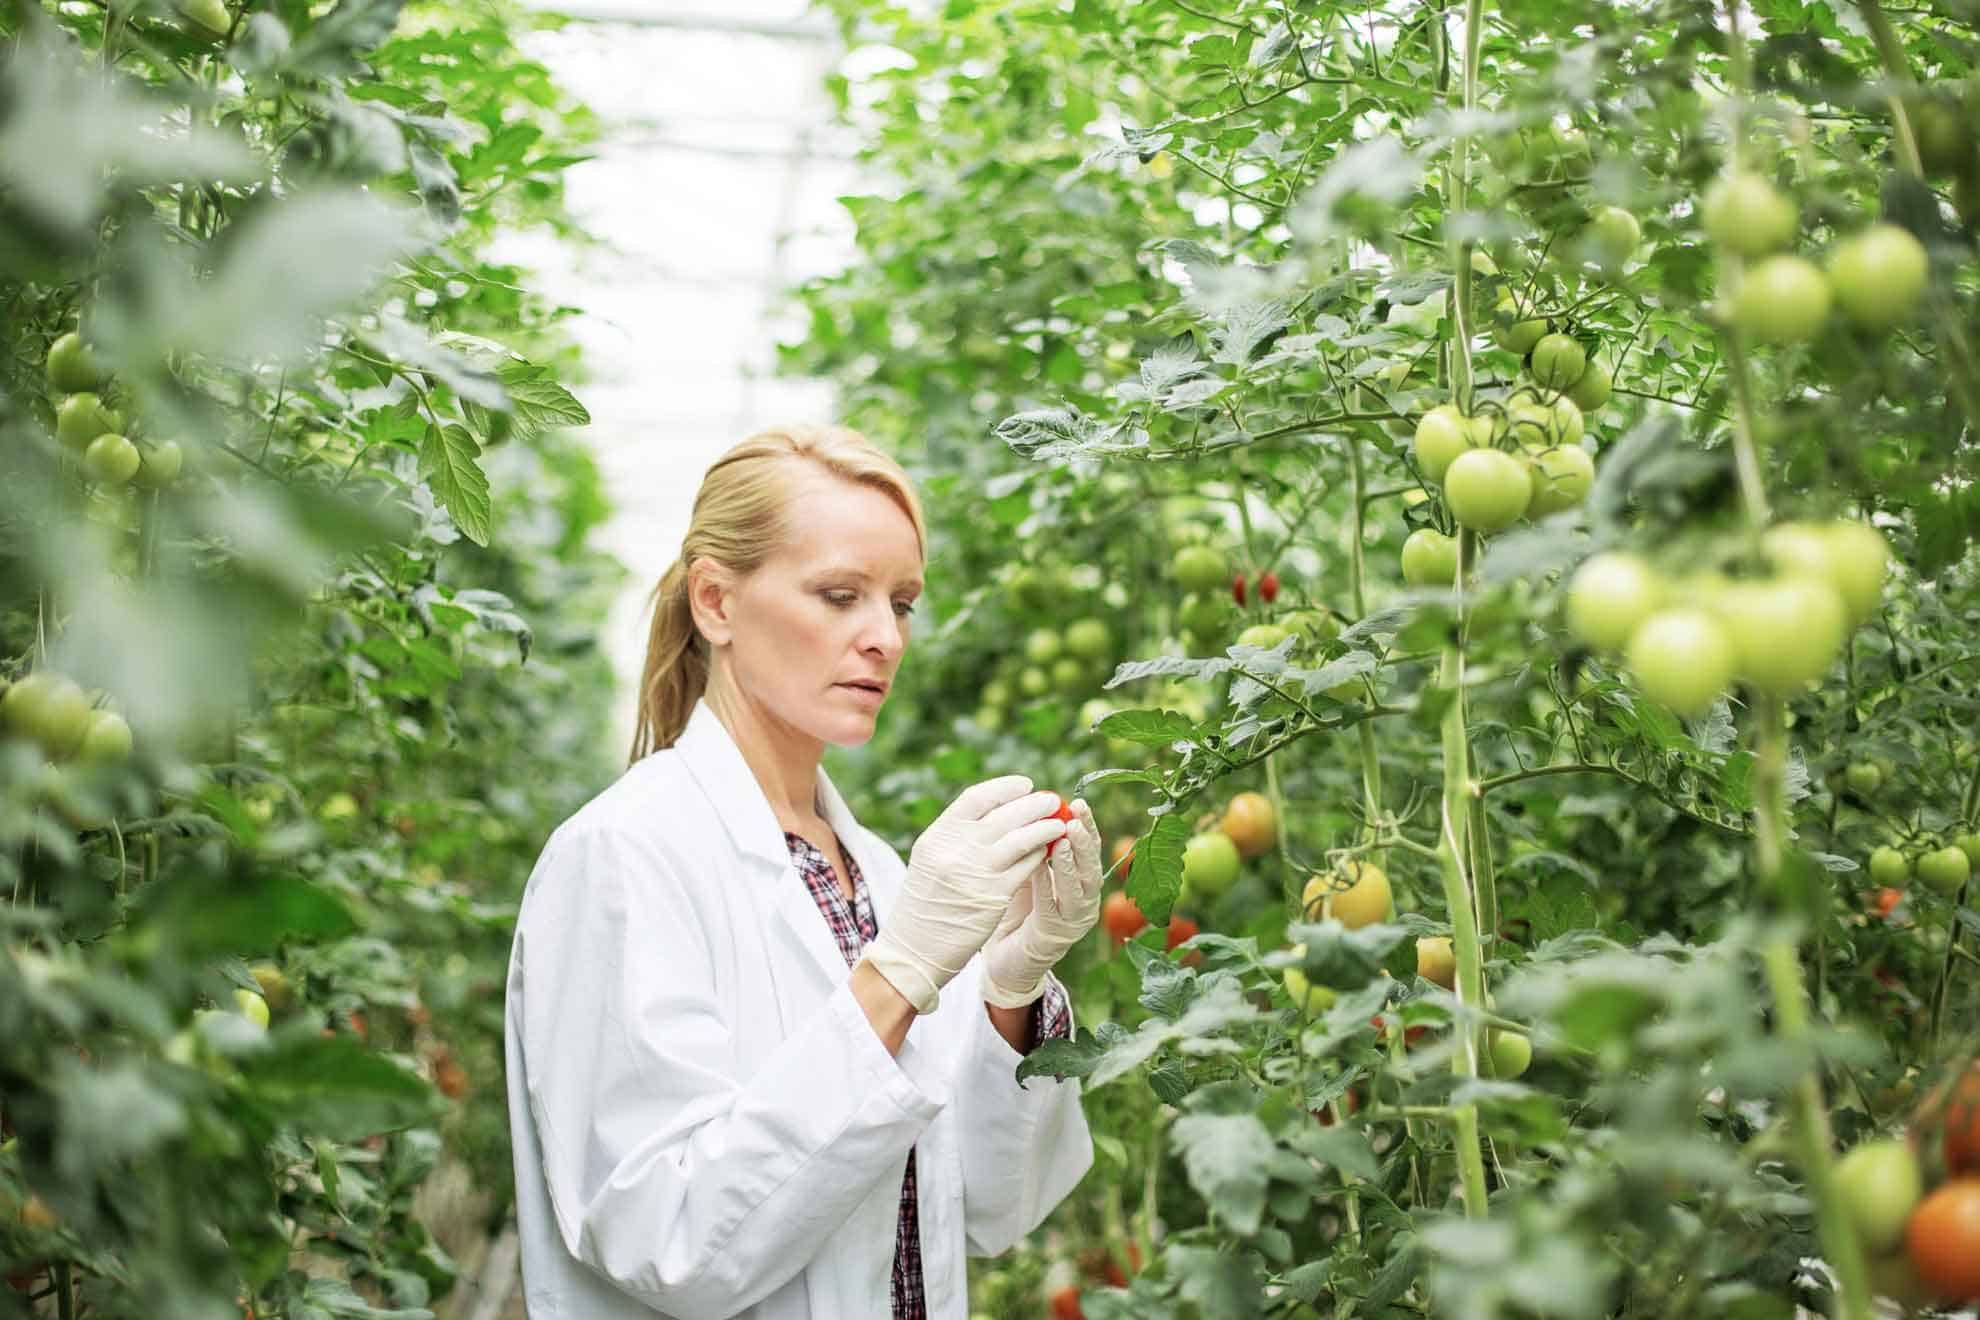 Women inspecting tomatos